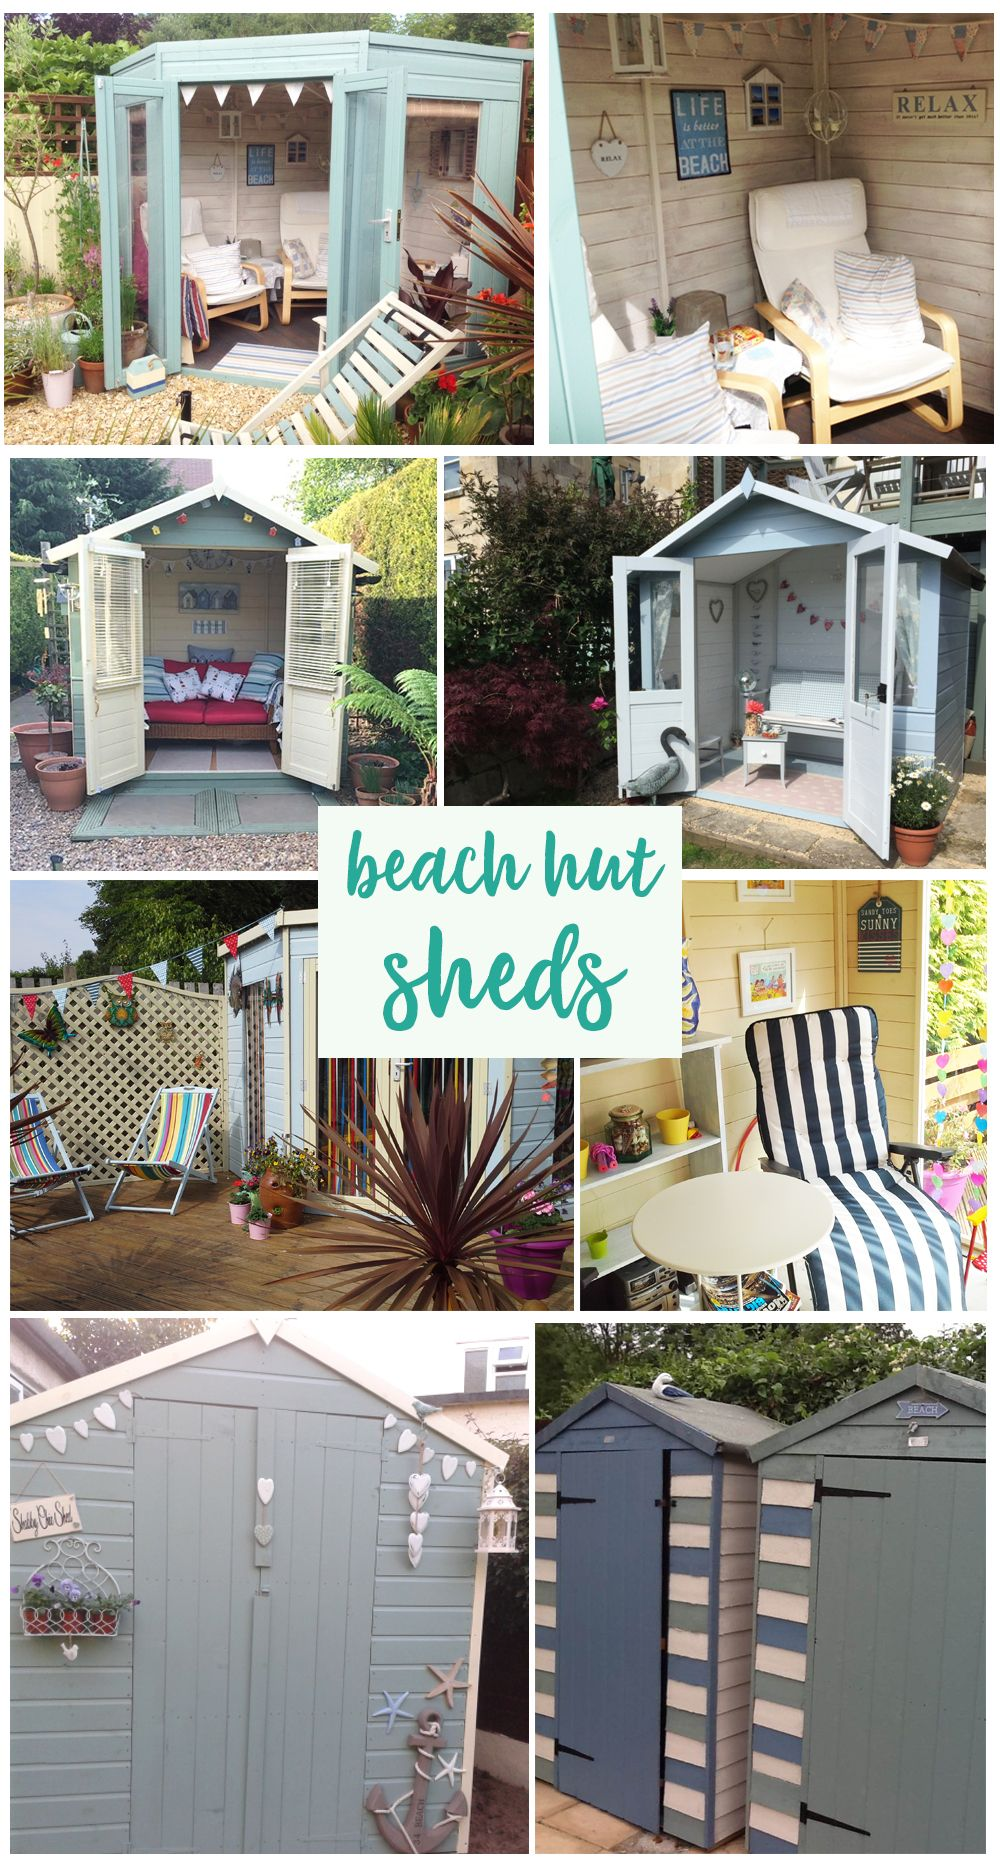 pin by sierra comellas on home decor pinterest beach huts